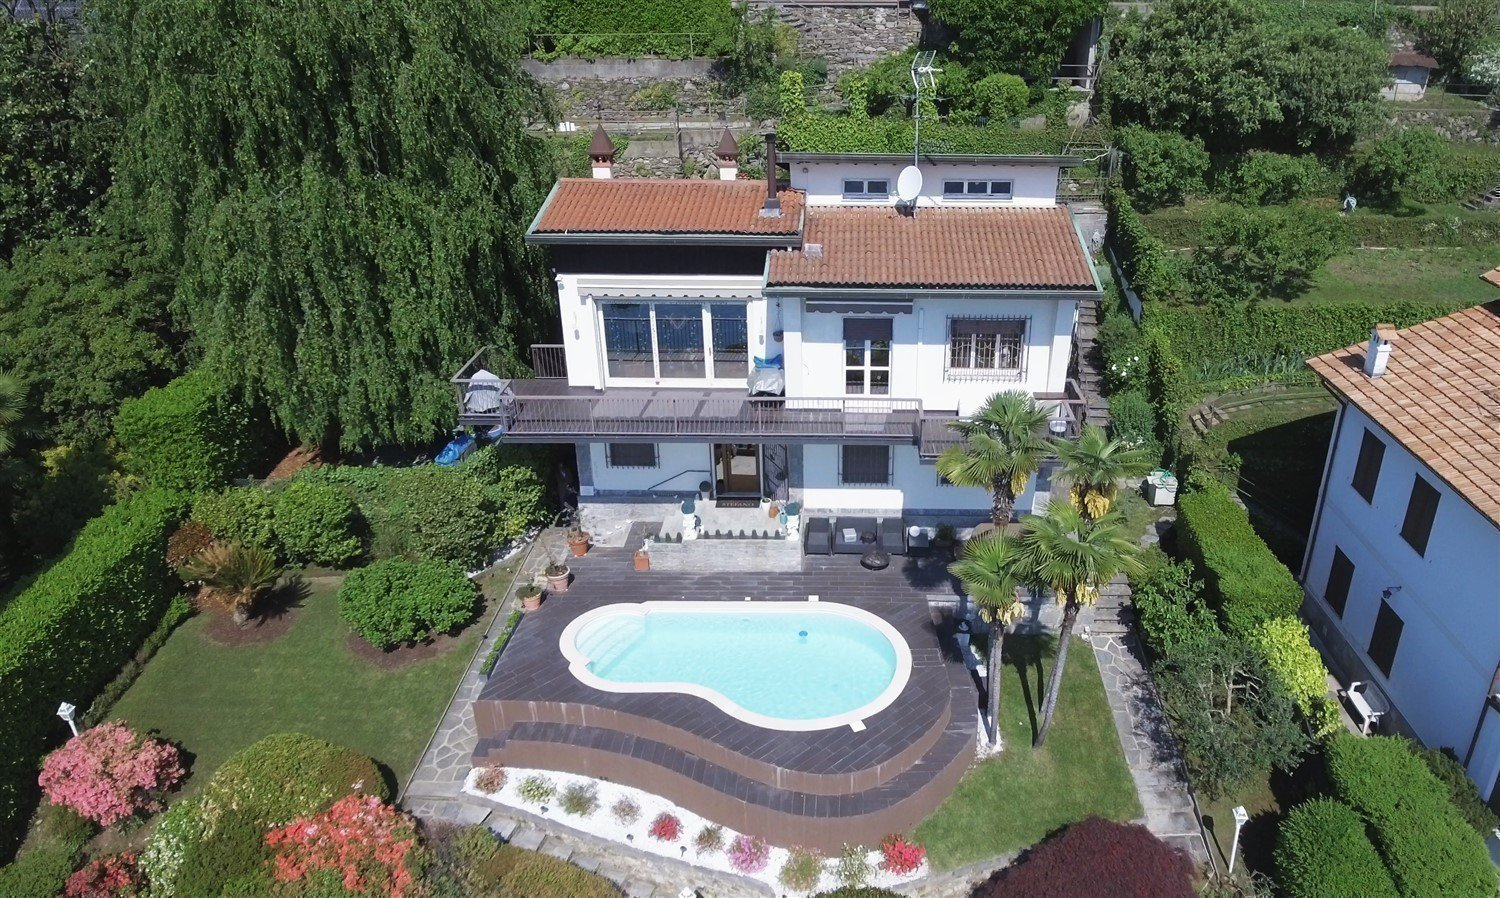 Luxurious villa for sale in lesa - villa with swimming pool